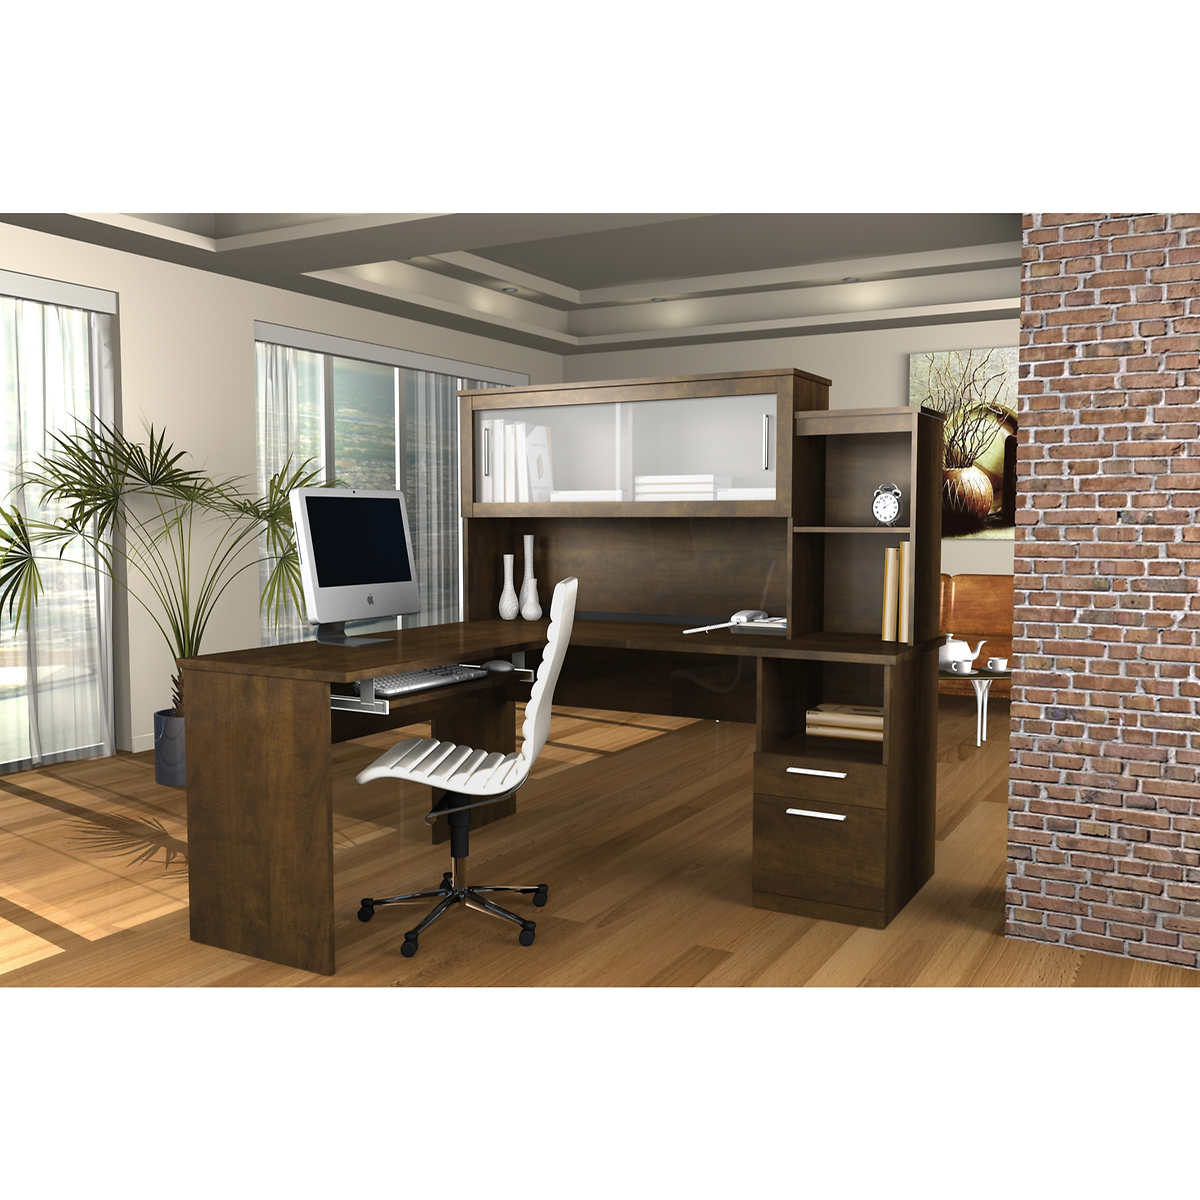 Peachy Sutton L Shape Desk With Hutch Home Interior And Landscaping Ologienasavecom